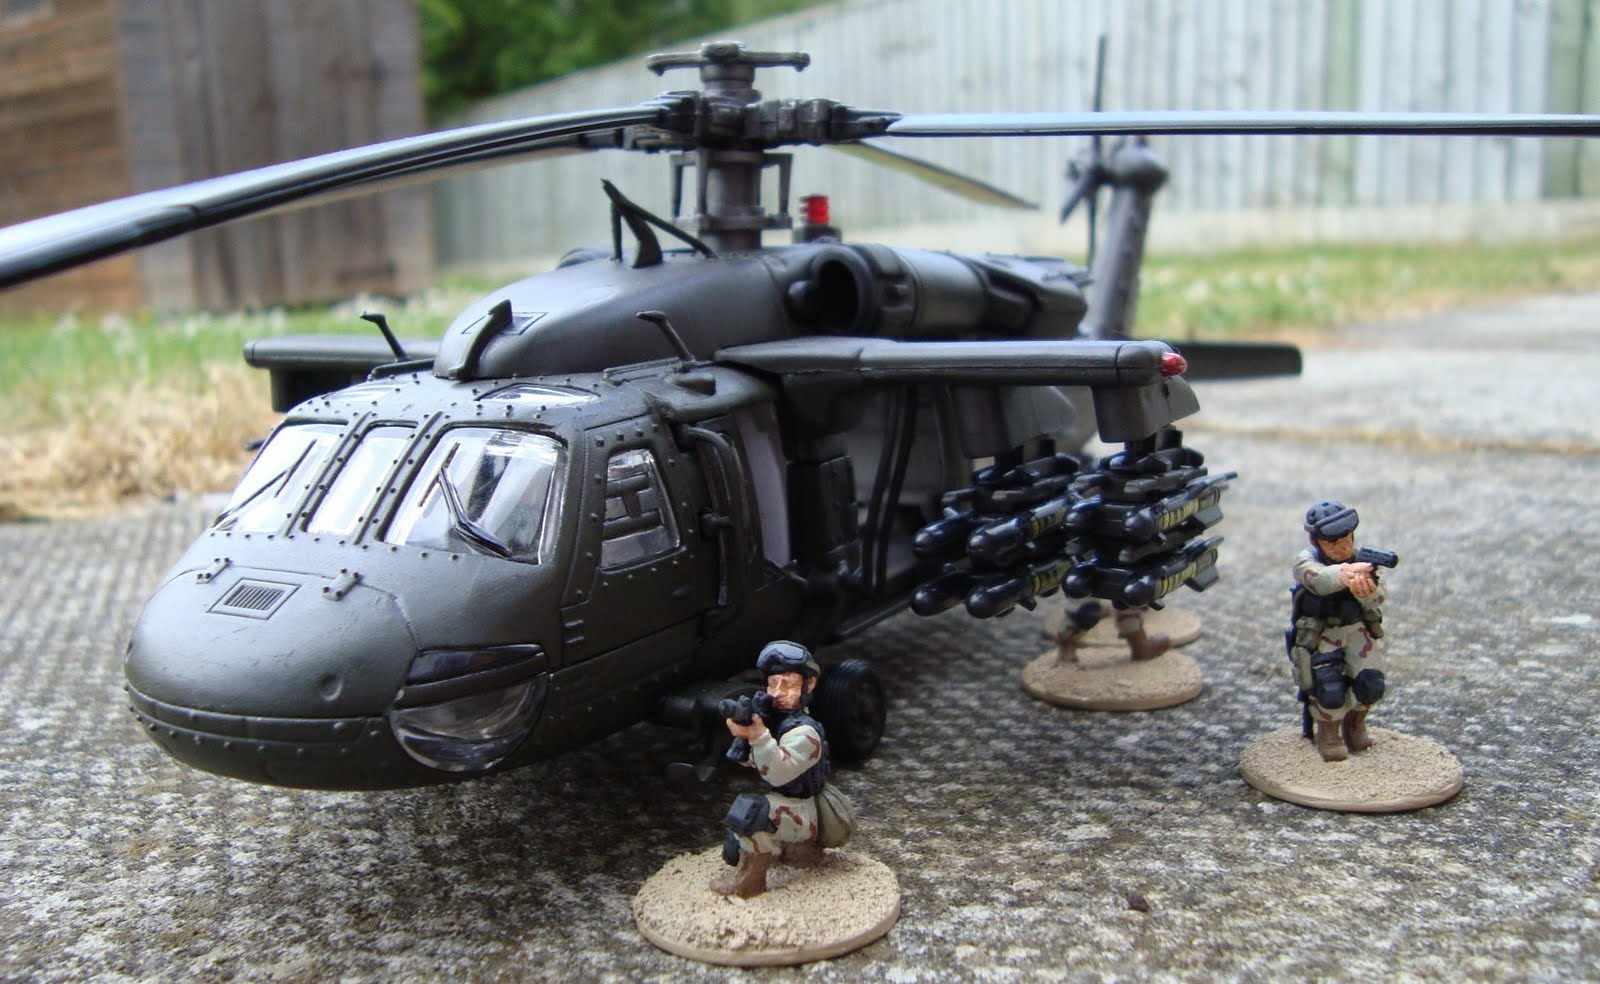 Forward Recon New Ray Vs Forces Of Valor Blackhawk Comparison